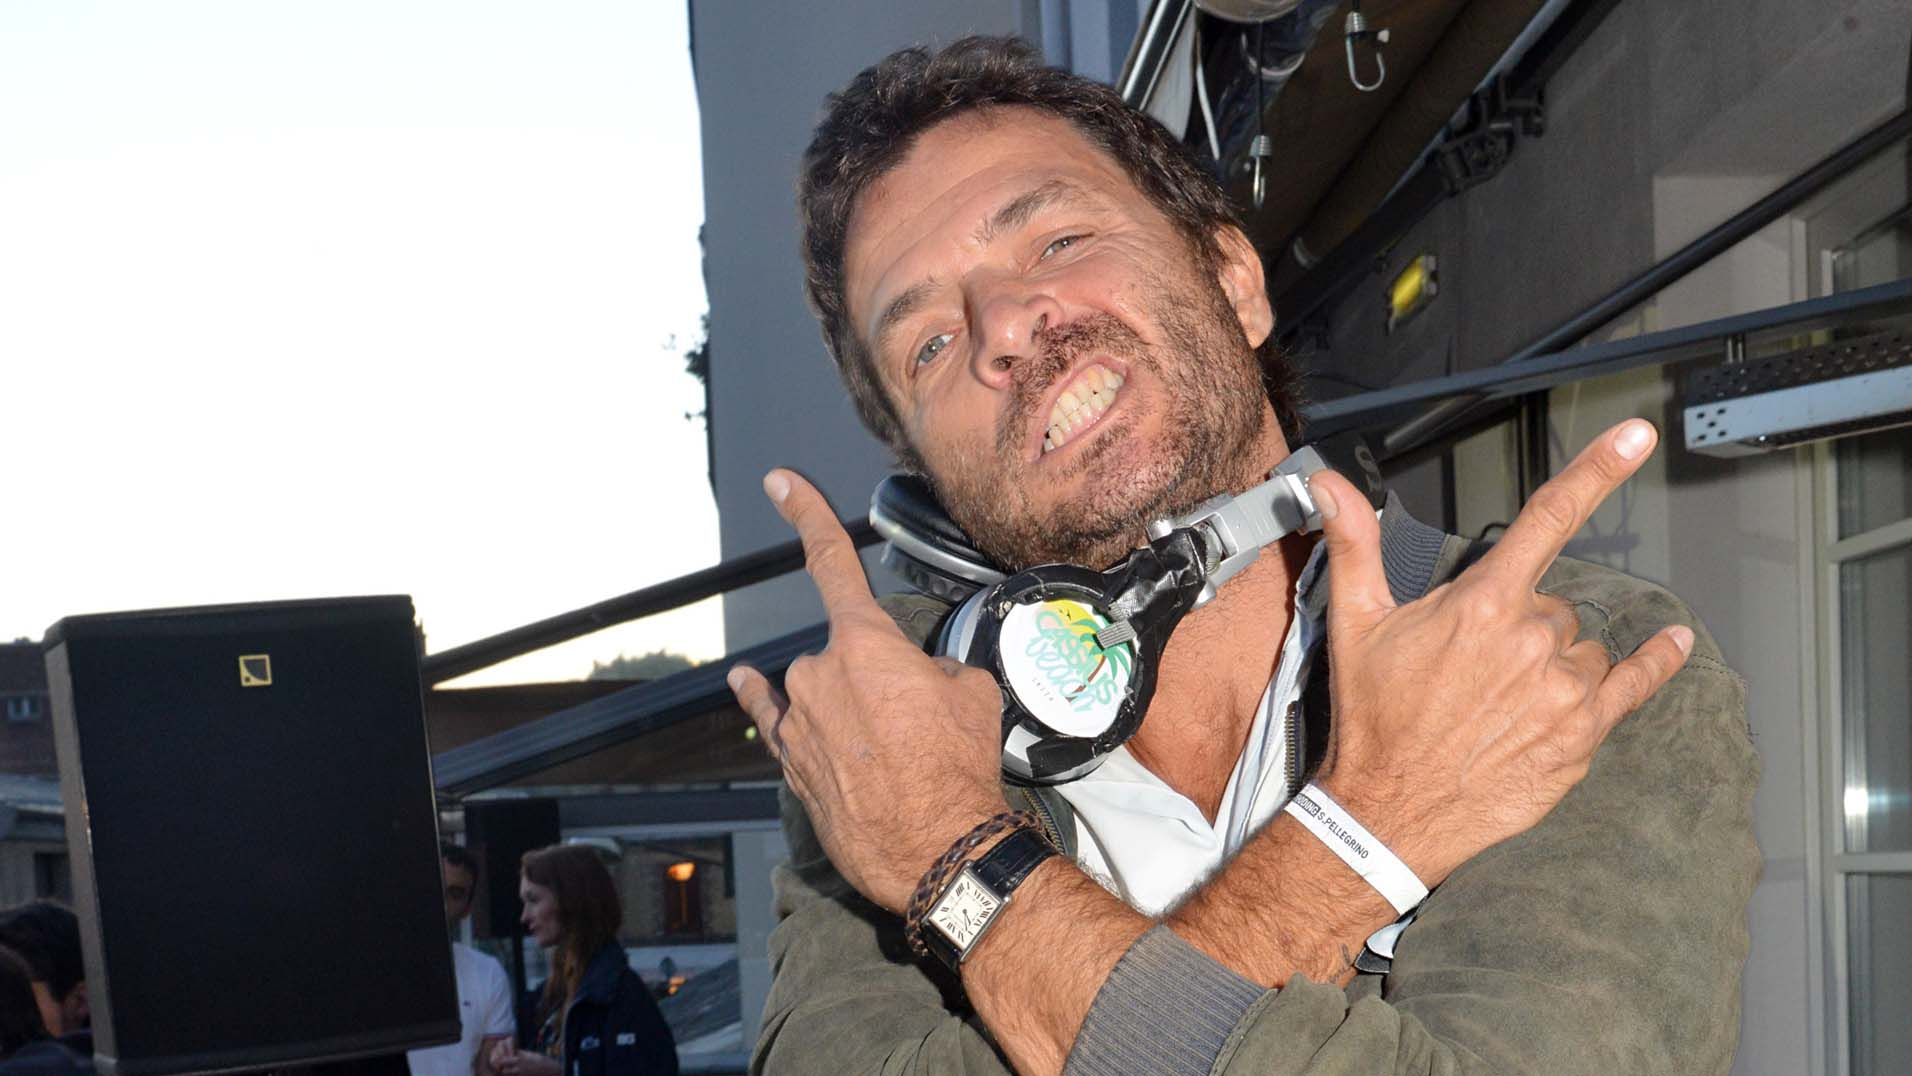 Philippe Zdar of Cassius killed in fall from Paris building | MusicRadar